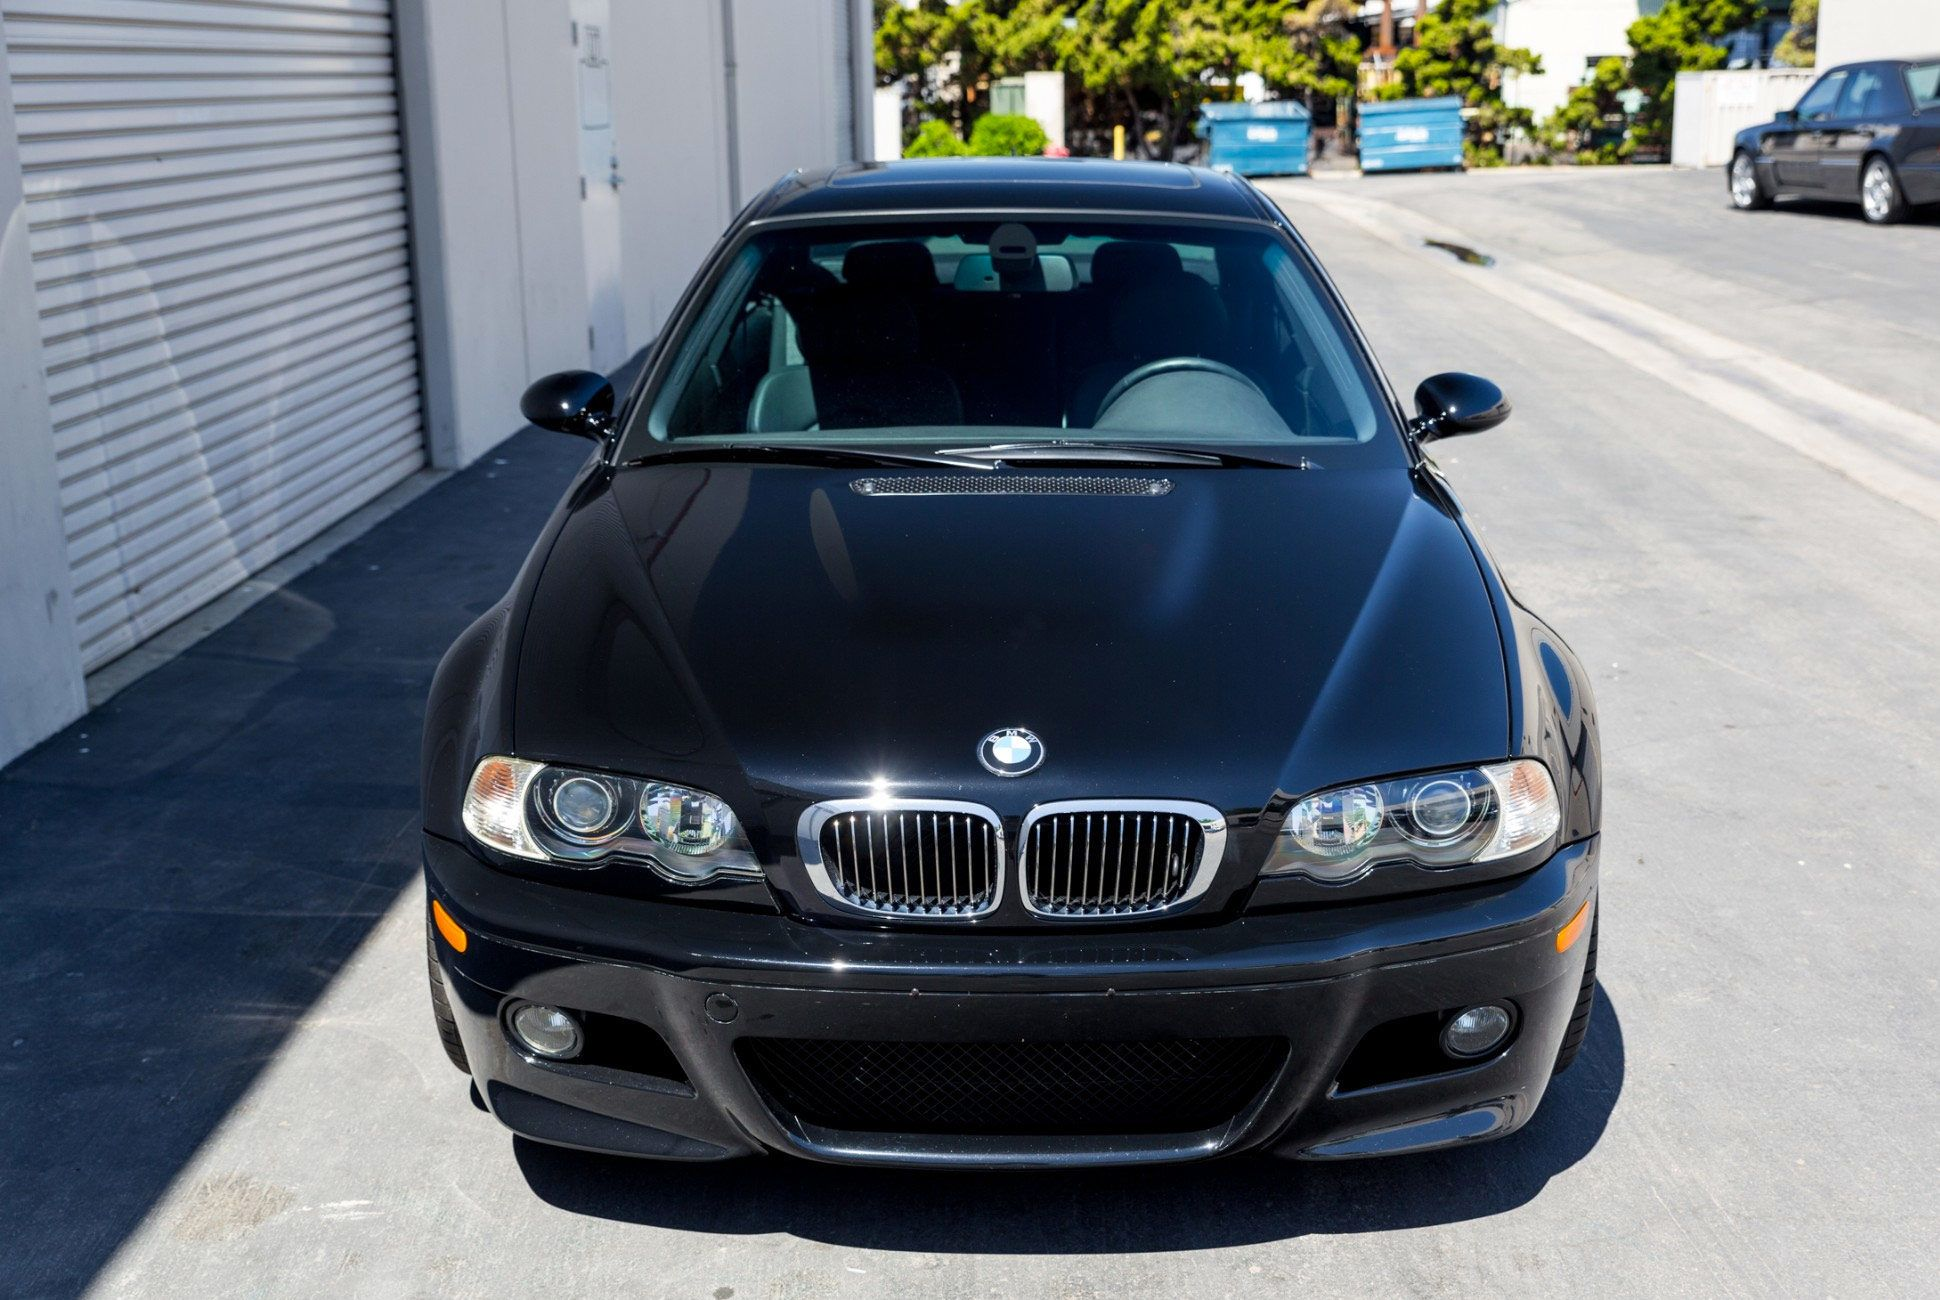 2005-Bring-a-Trailer-BMW-M3--gear-patrol-6